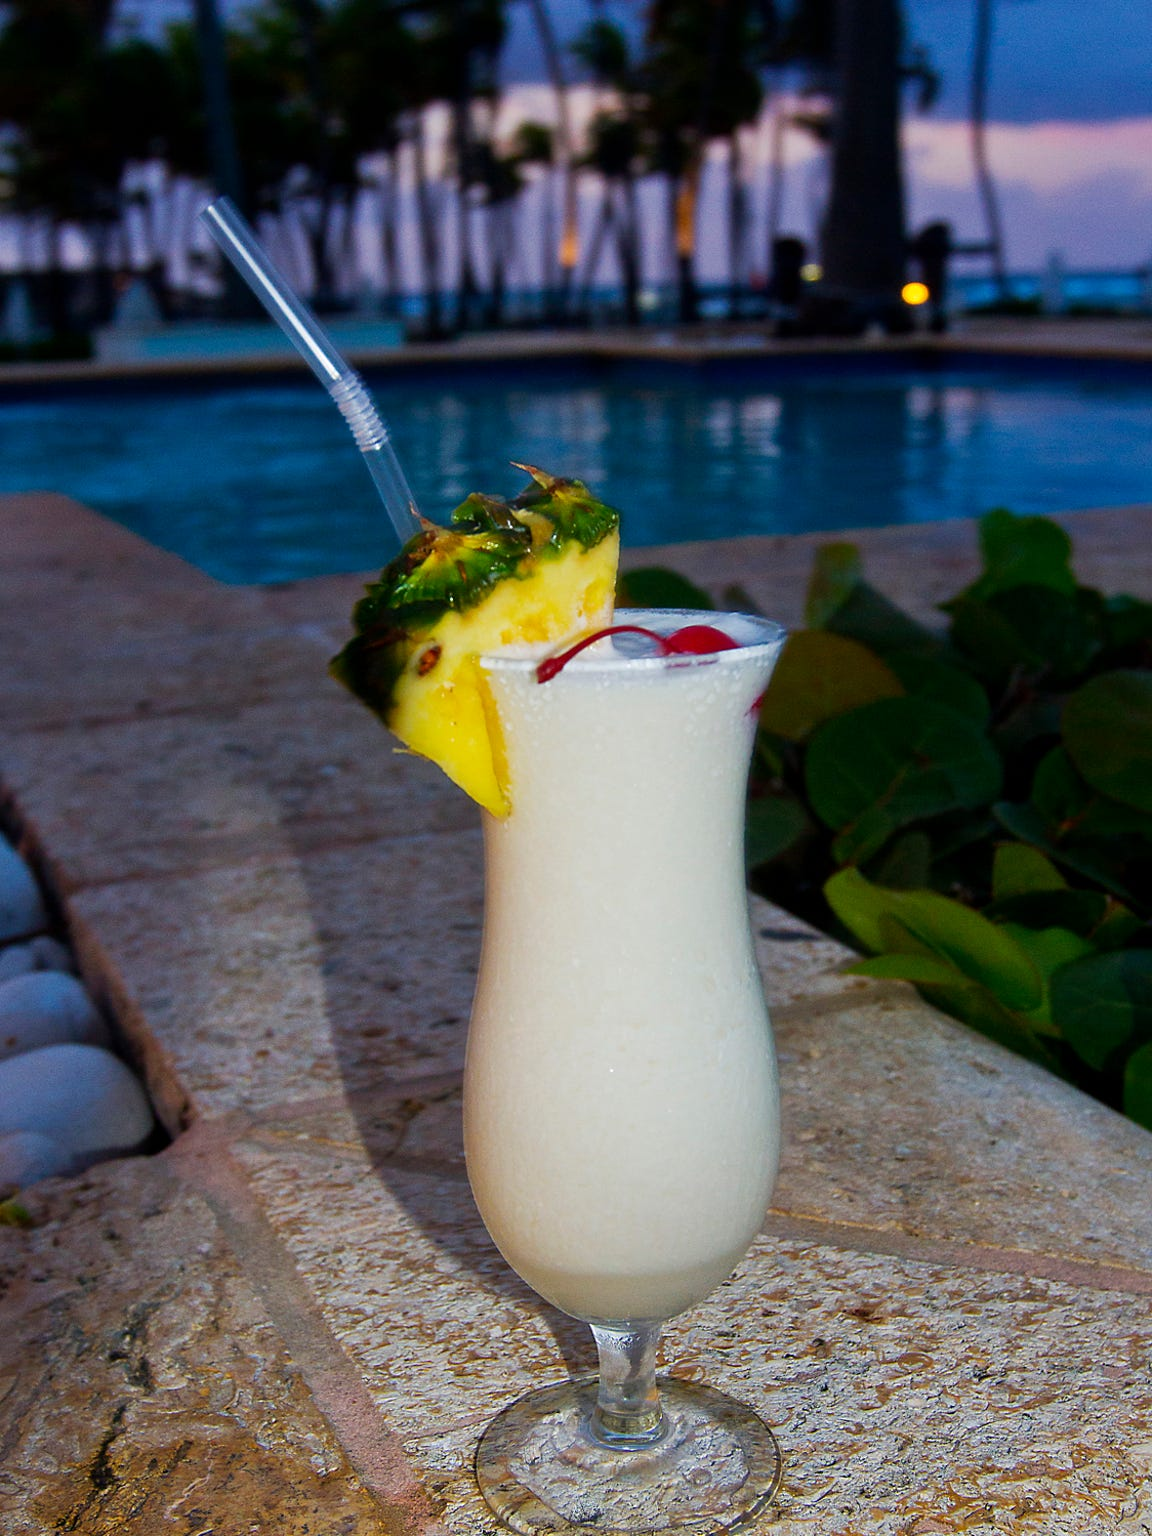 No one seems to dispute this frothy rum-coconut-and-pineapple